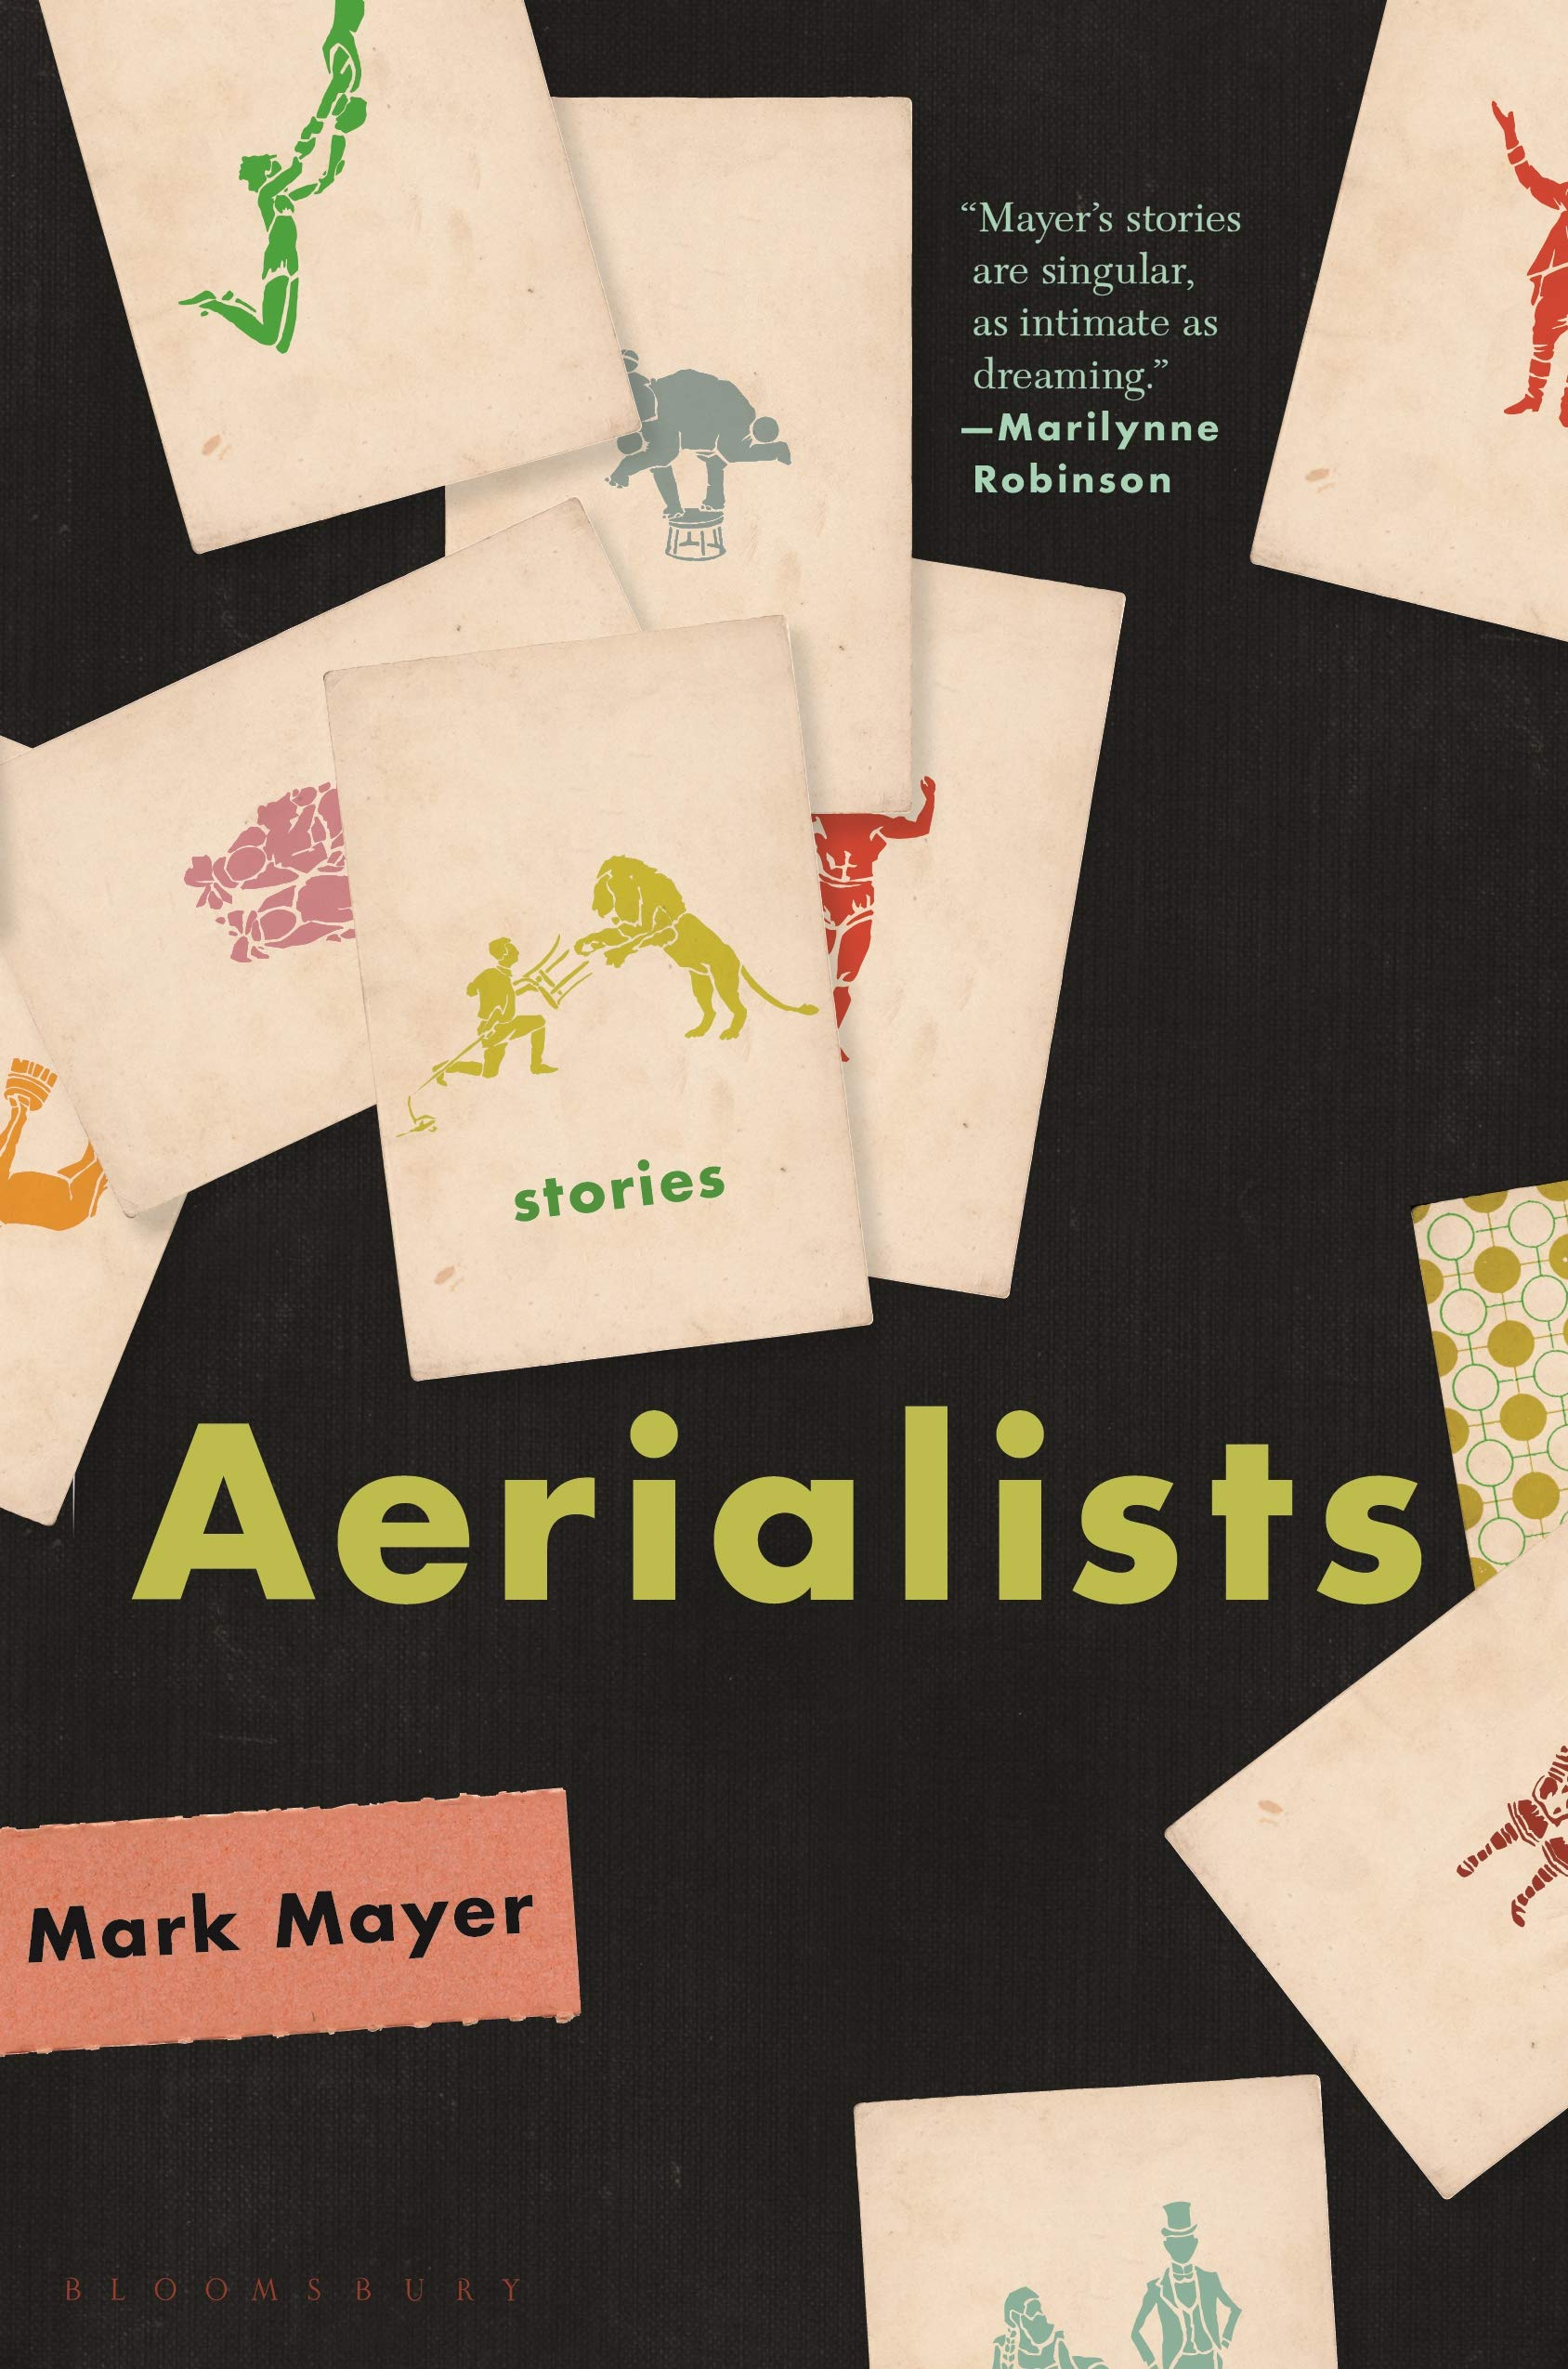 The Aerialists book cover